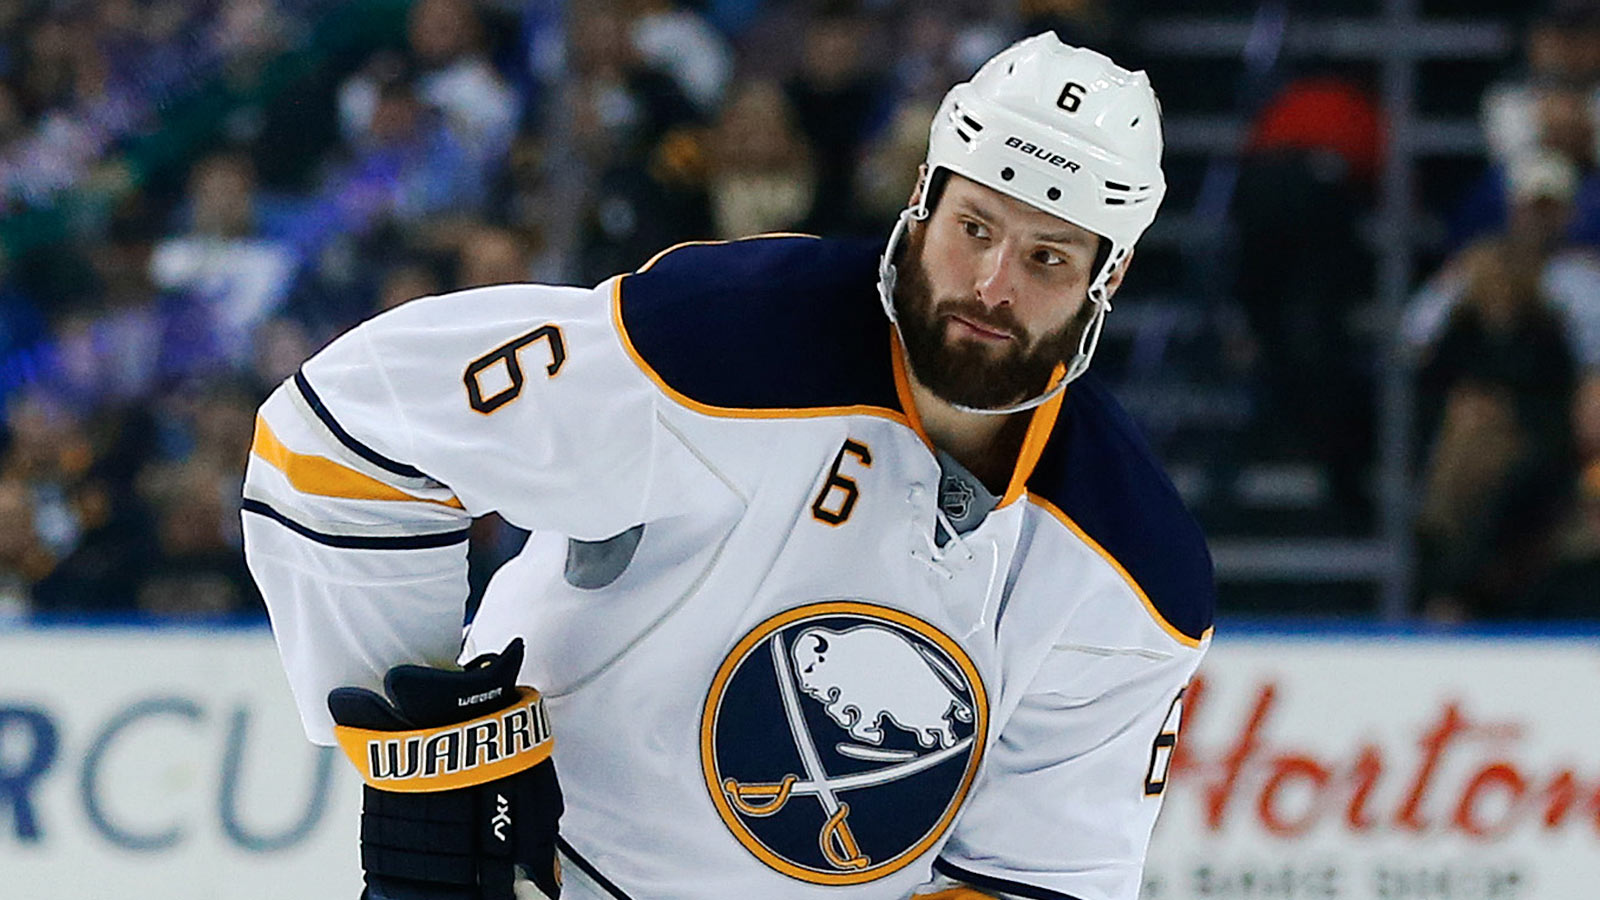 Capitals acquire D Mike Weber from Sabres for 2017 3rd-round pick